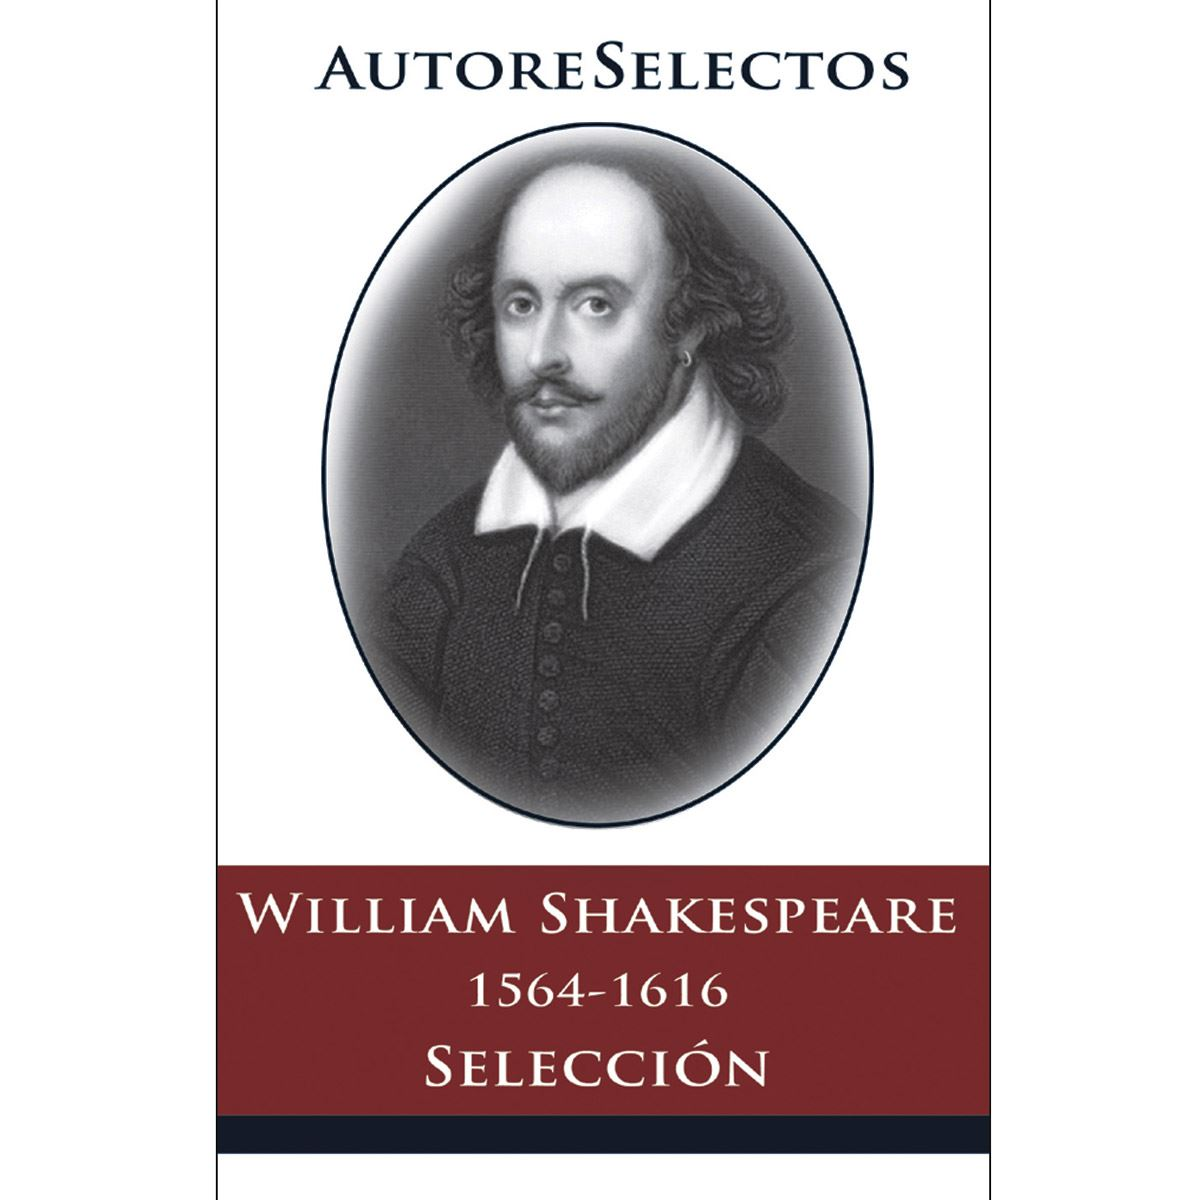 William Shakespeare - Autores Selectos